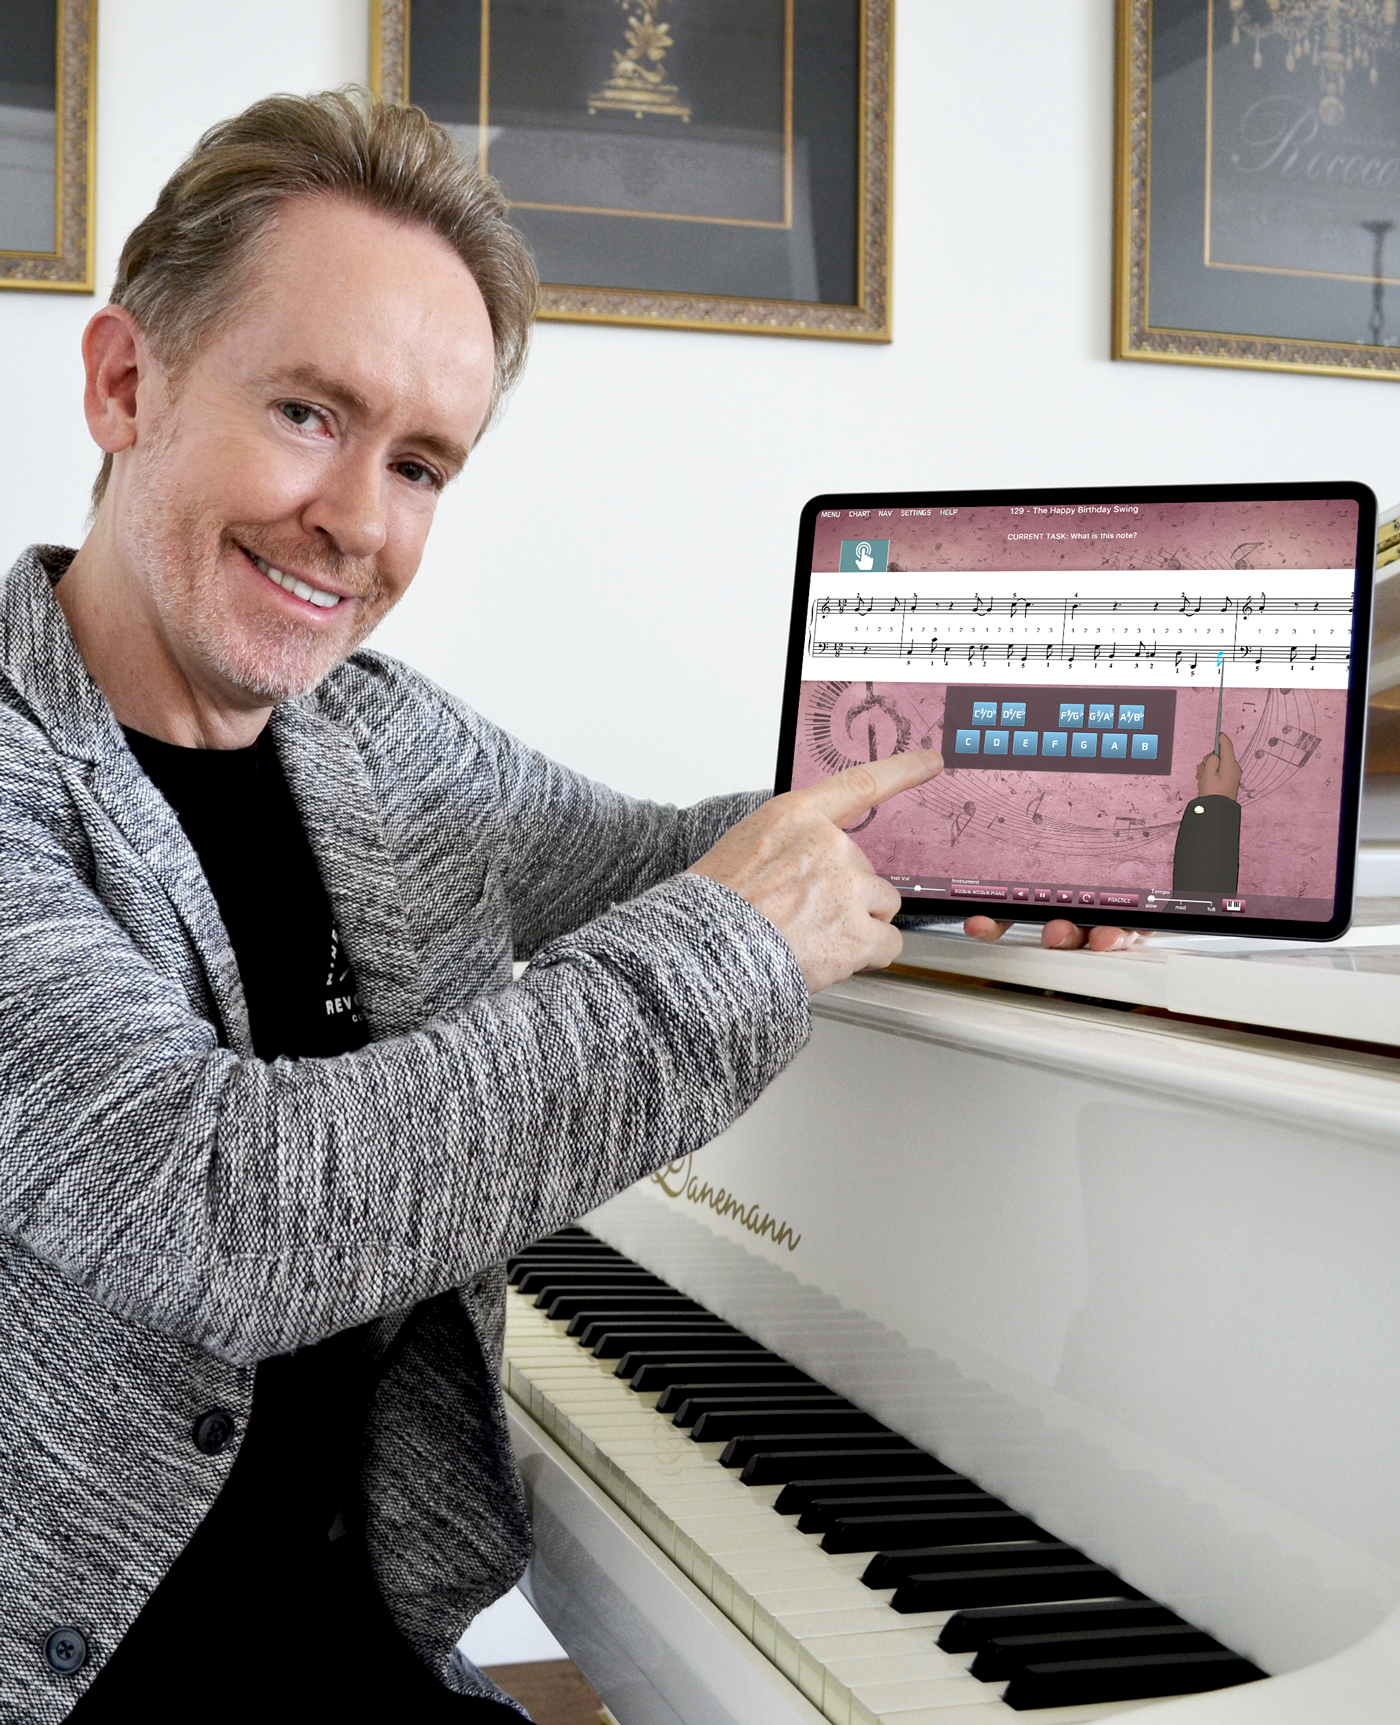 Musiah inventor shows new iPad piano lessons app